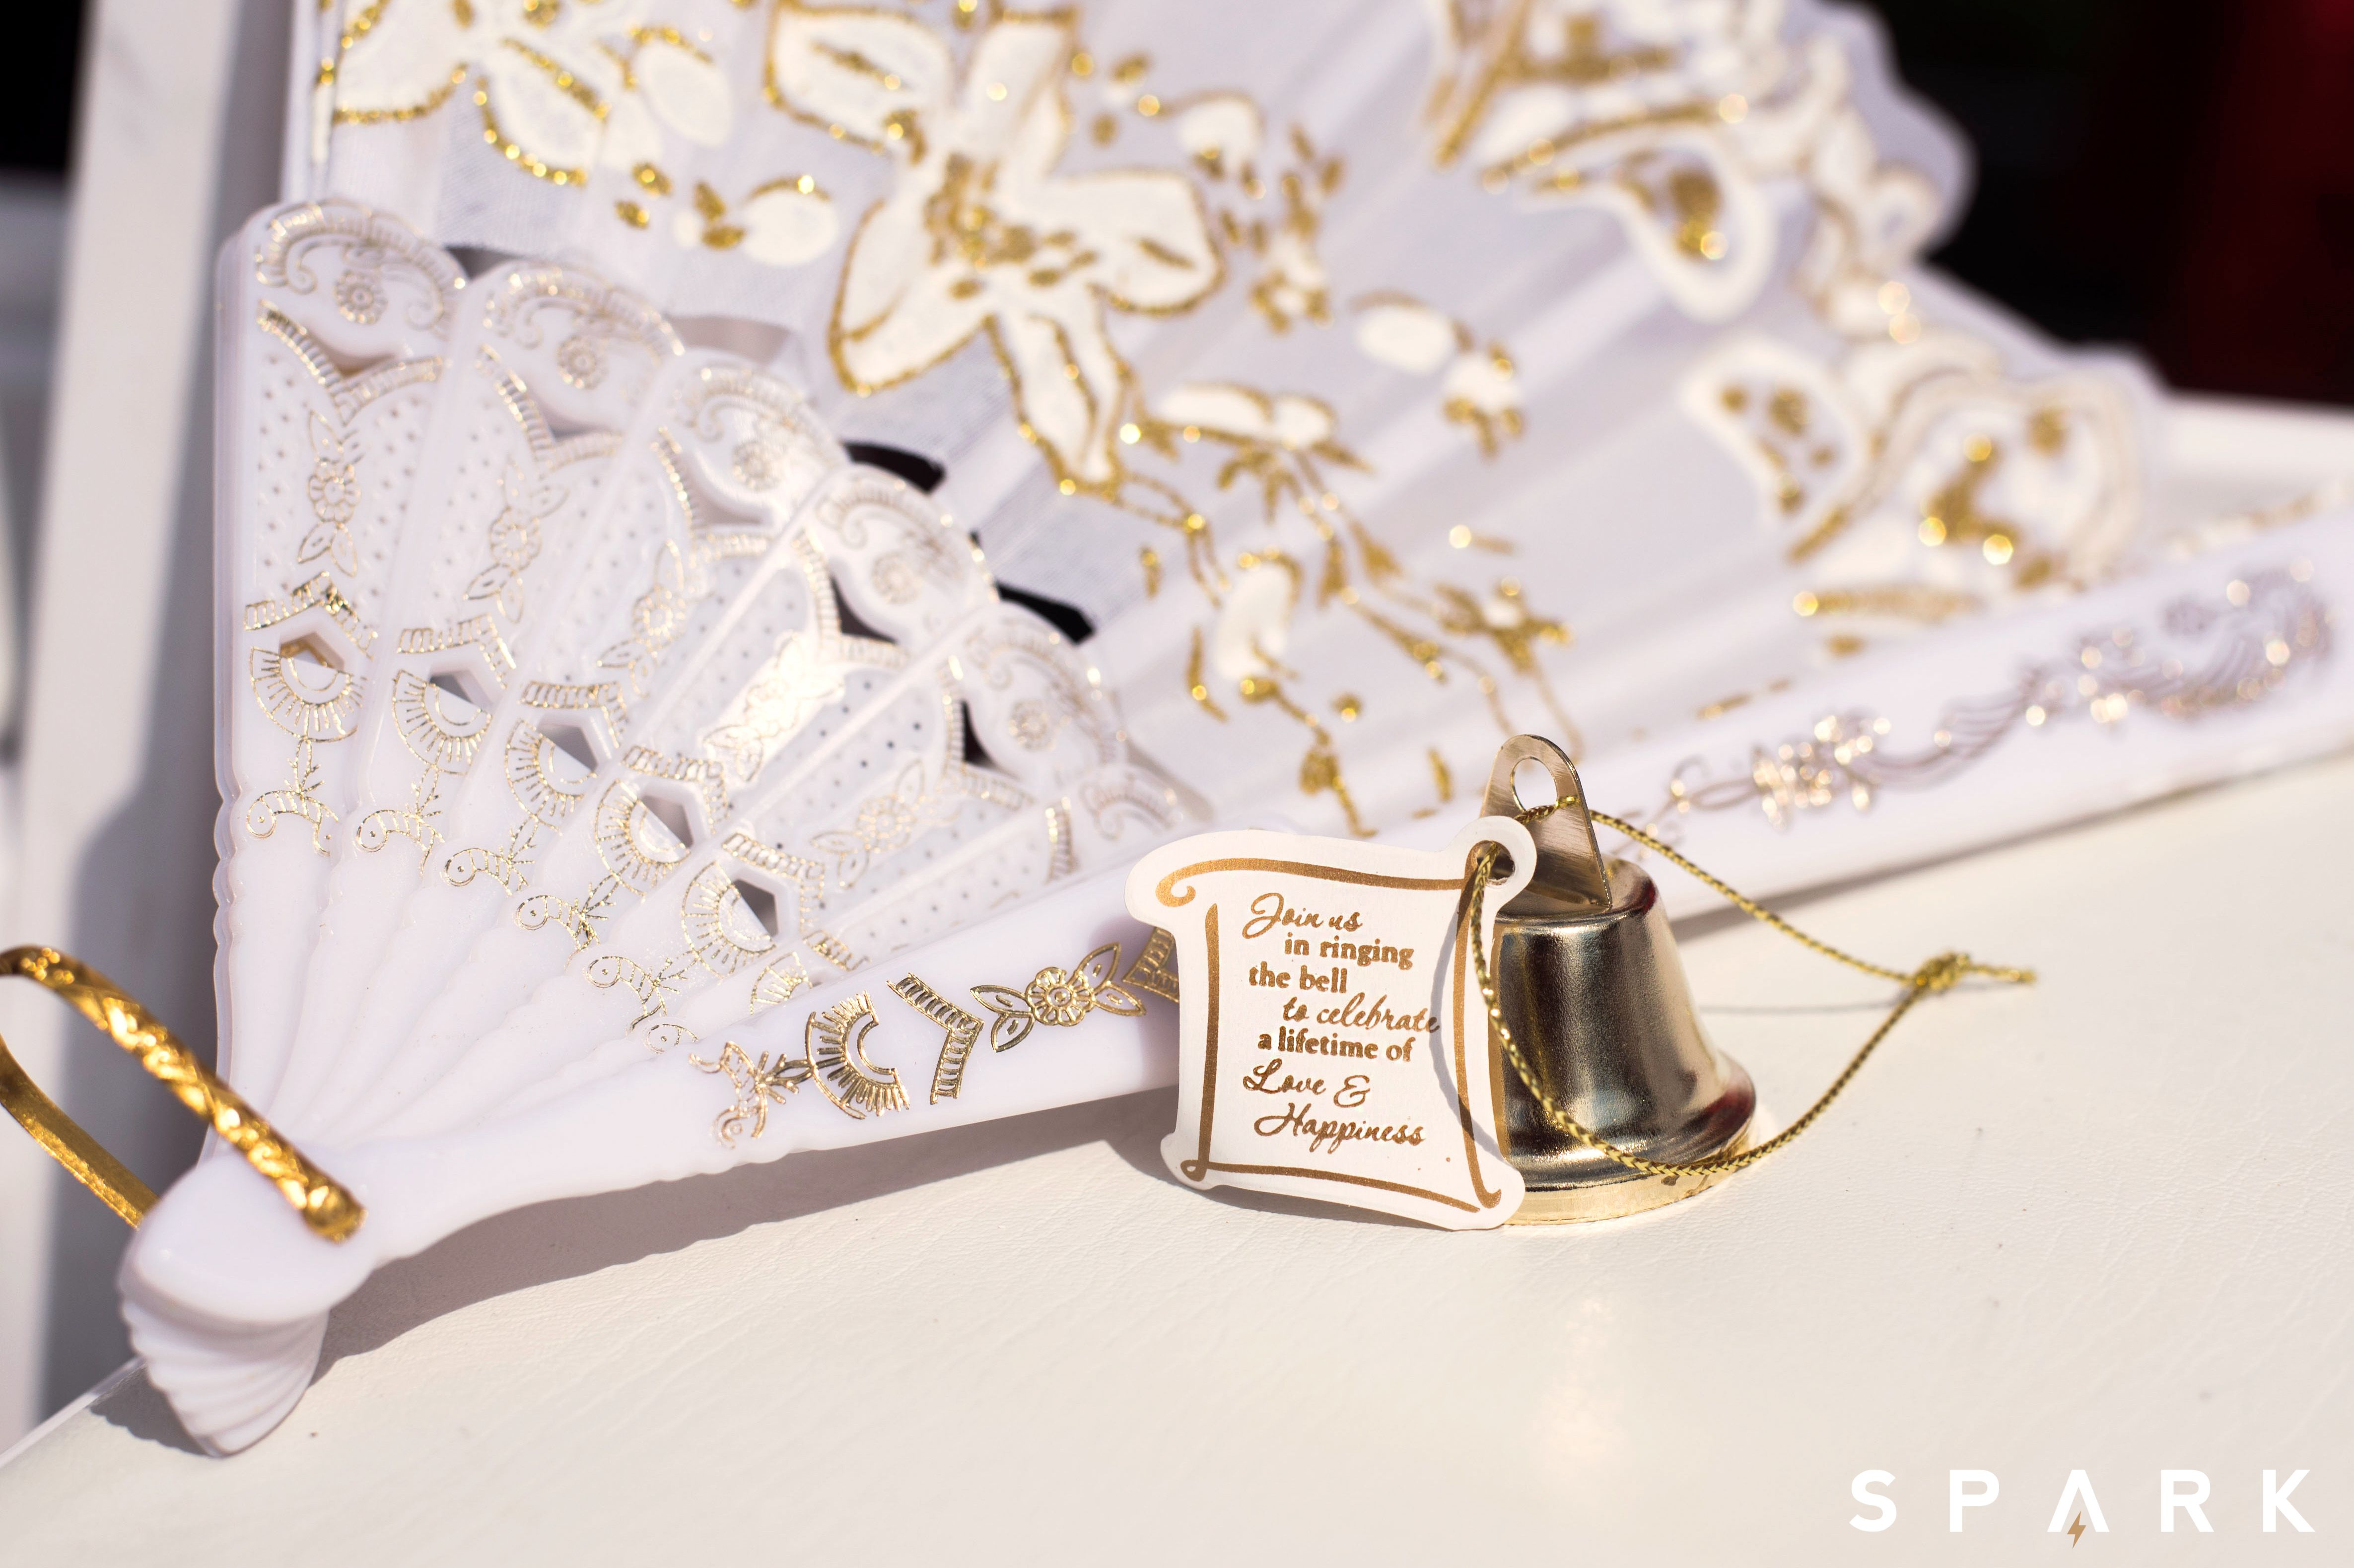 Join us in ringing the bell to celebrate a lifetime of love and ...